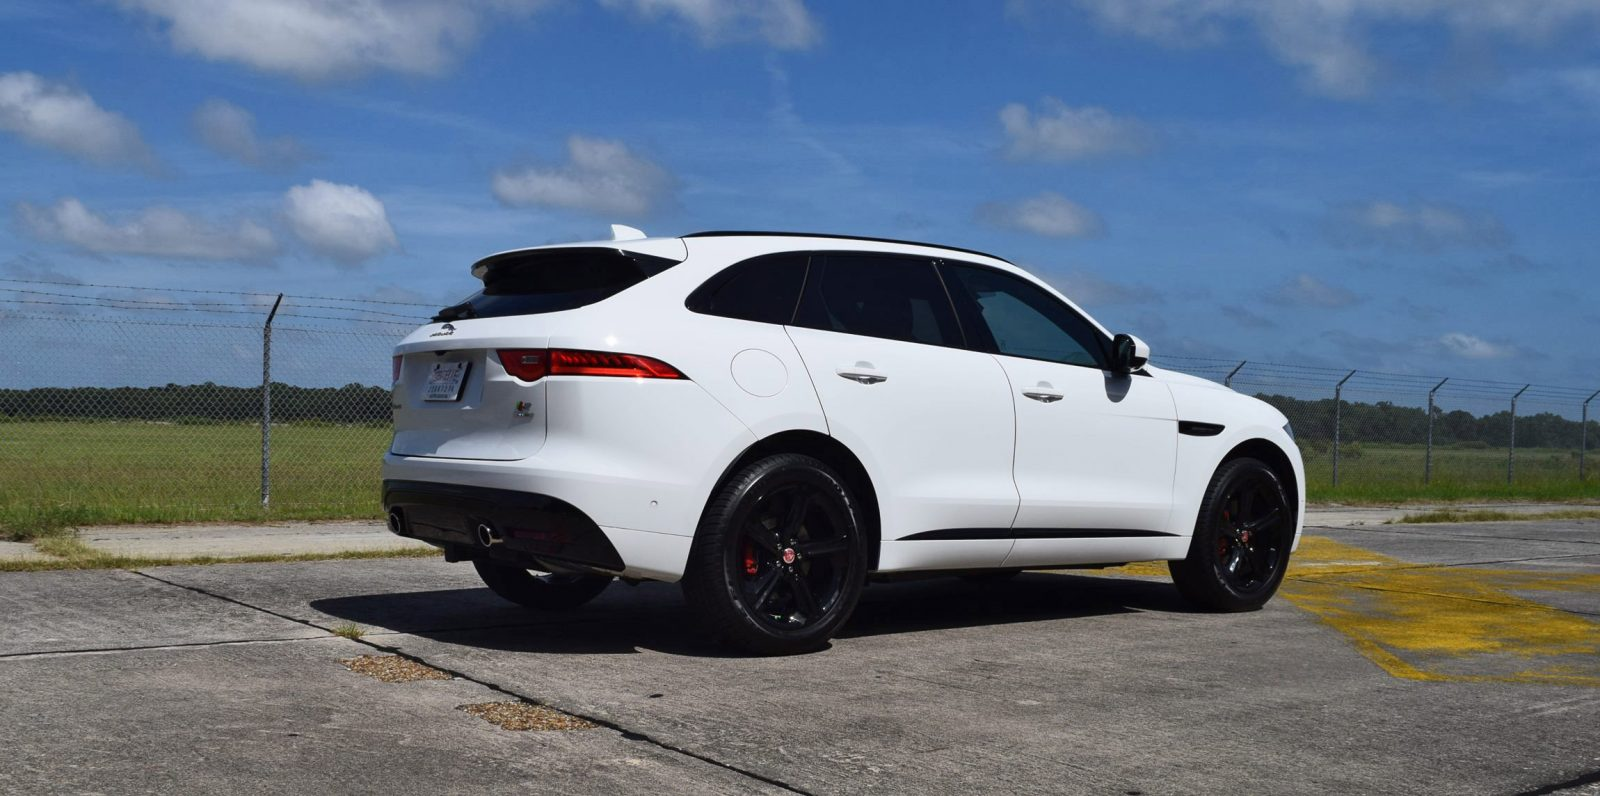 2017 jaguar f pace s usa first drive review video and 140 all new photos. Black Bedroom Furniture Sets. Home Design Ideas